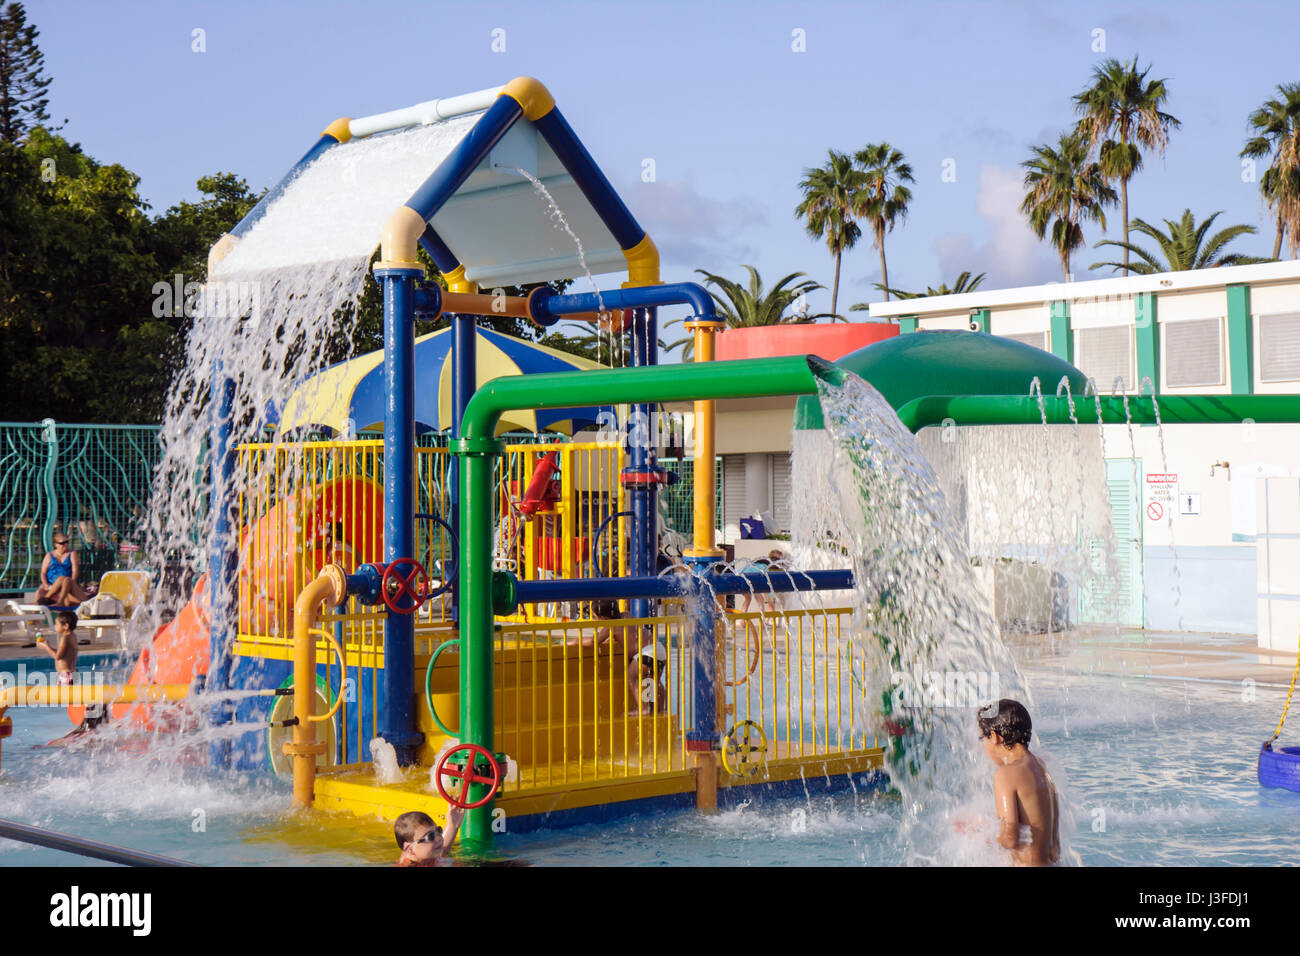 Miami Beach Florida Flamingo Park Swimming Pool Public Boy Boys Child Stock Photo Royalty Free